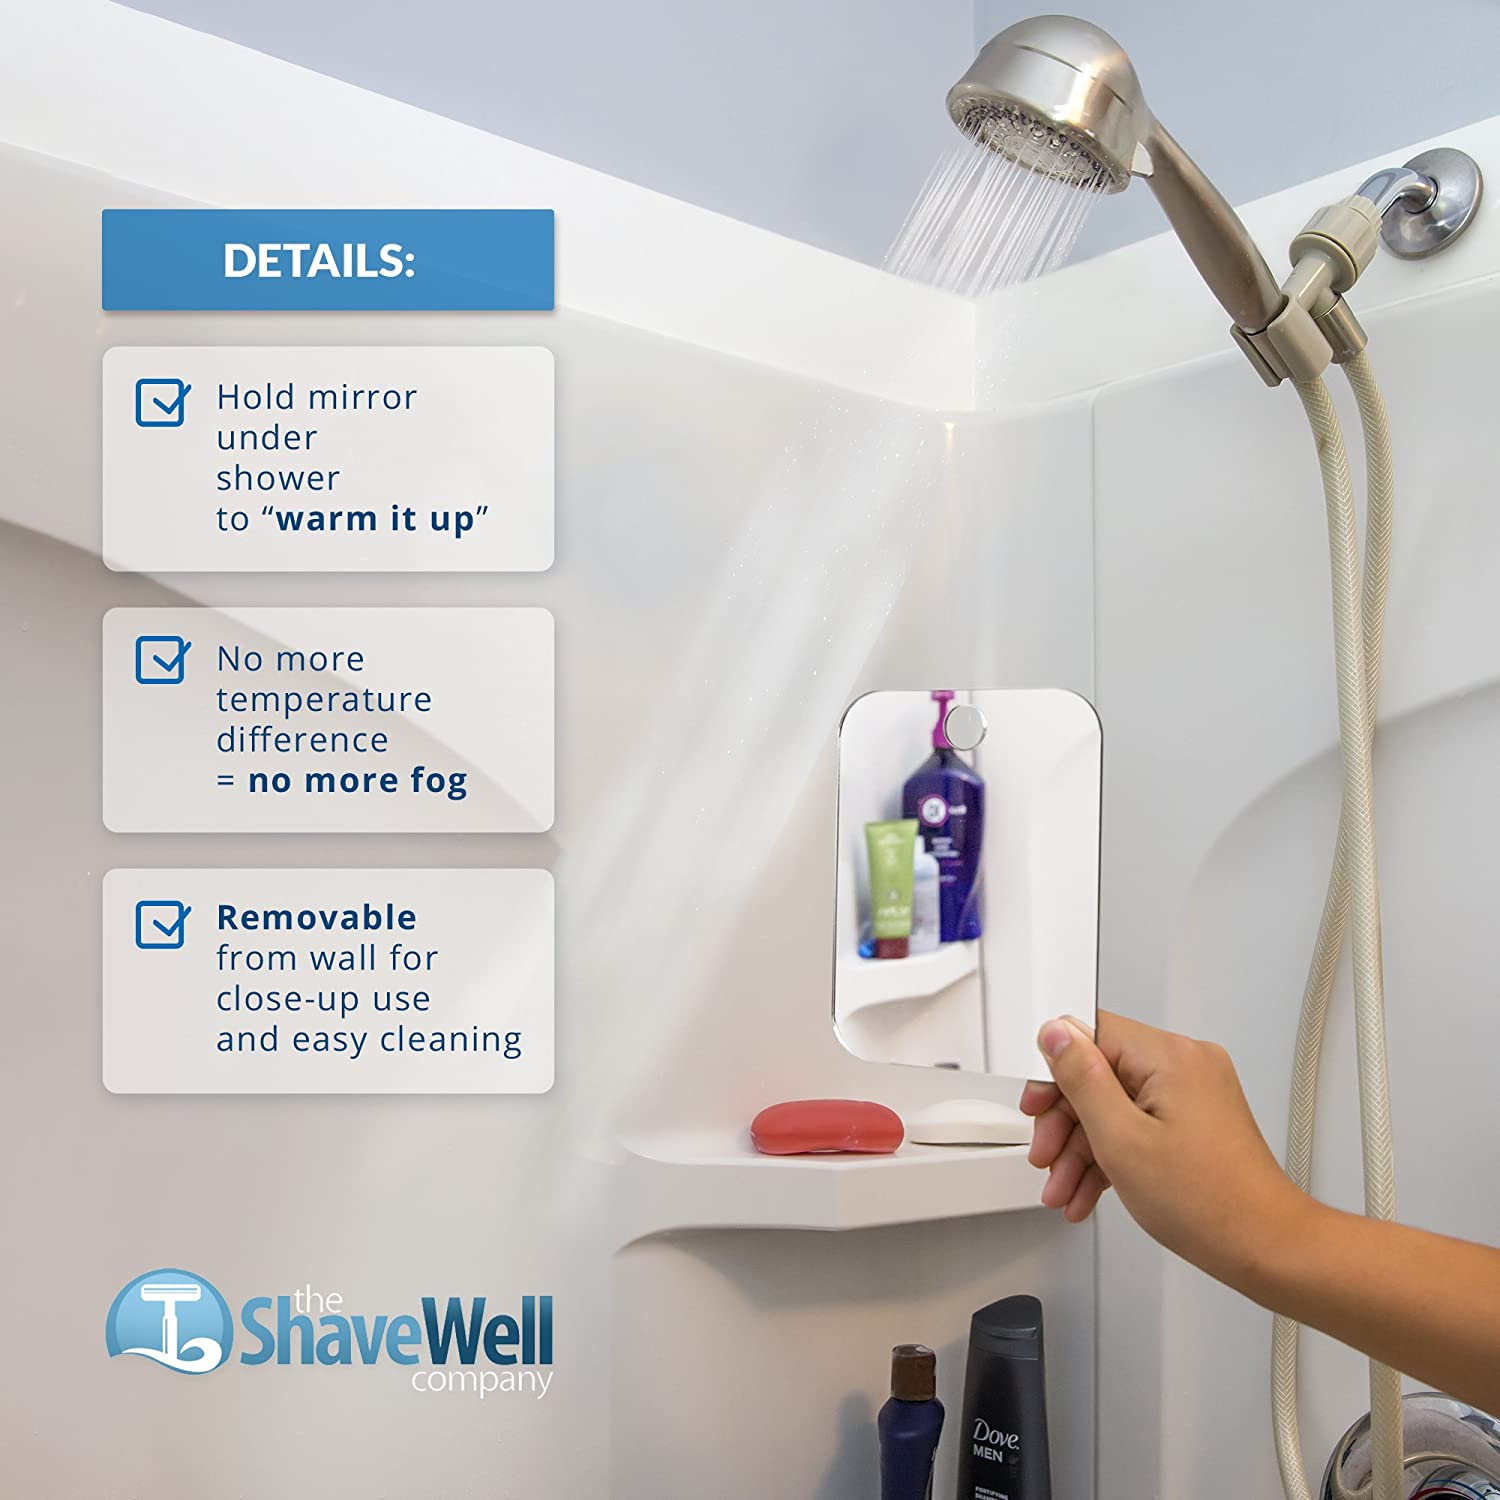 Amazon.com: Deluxe Shave Well Fog-free Shower Mirror - Made in the ...